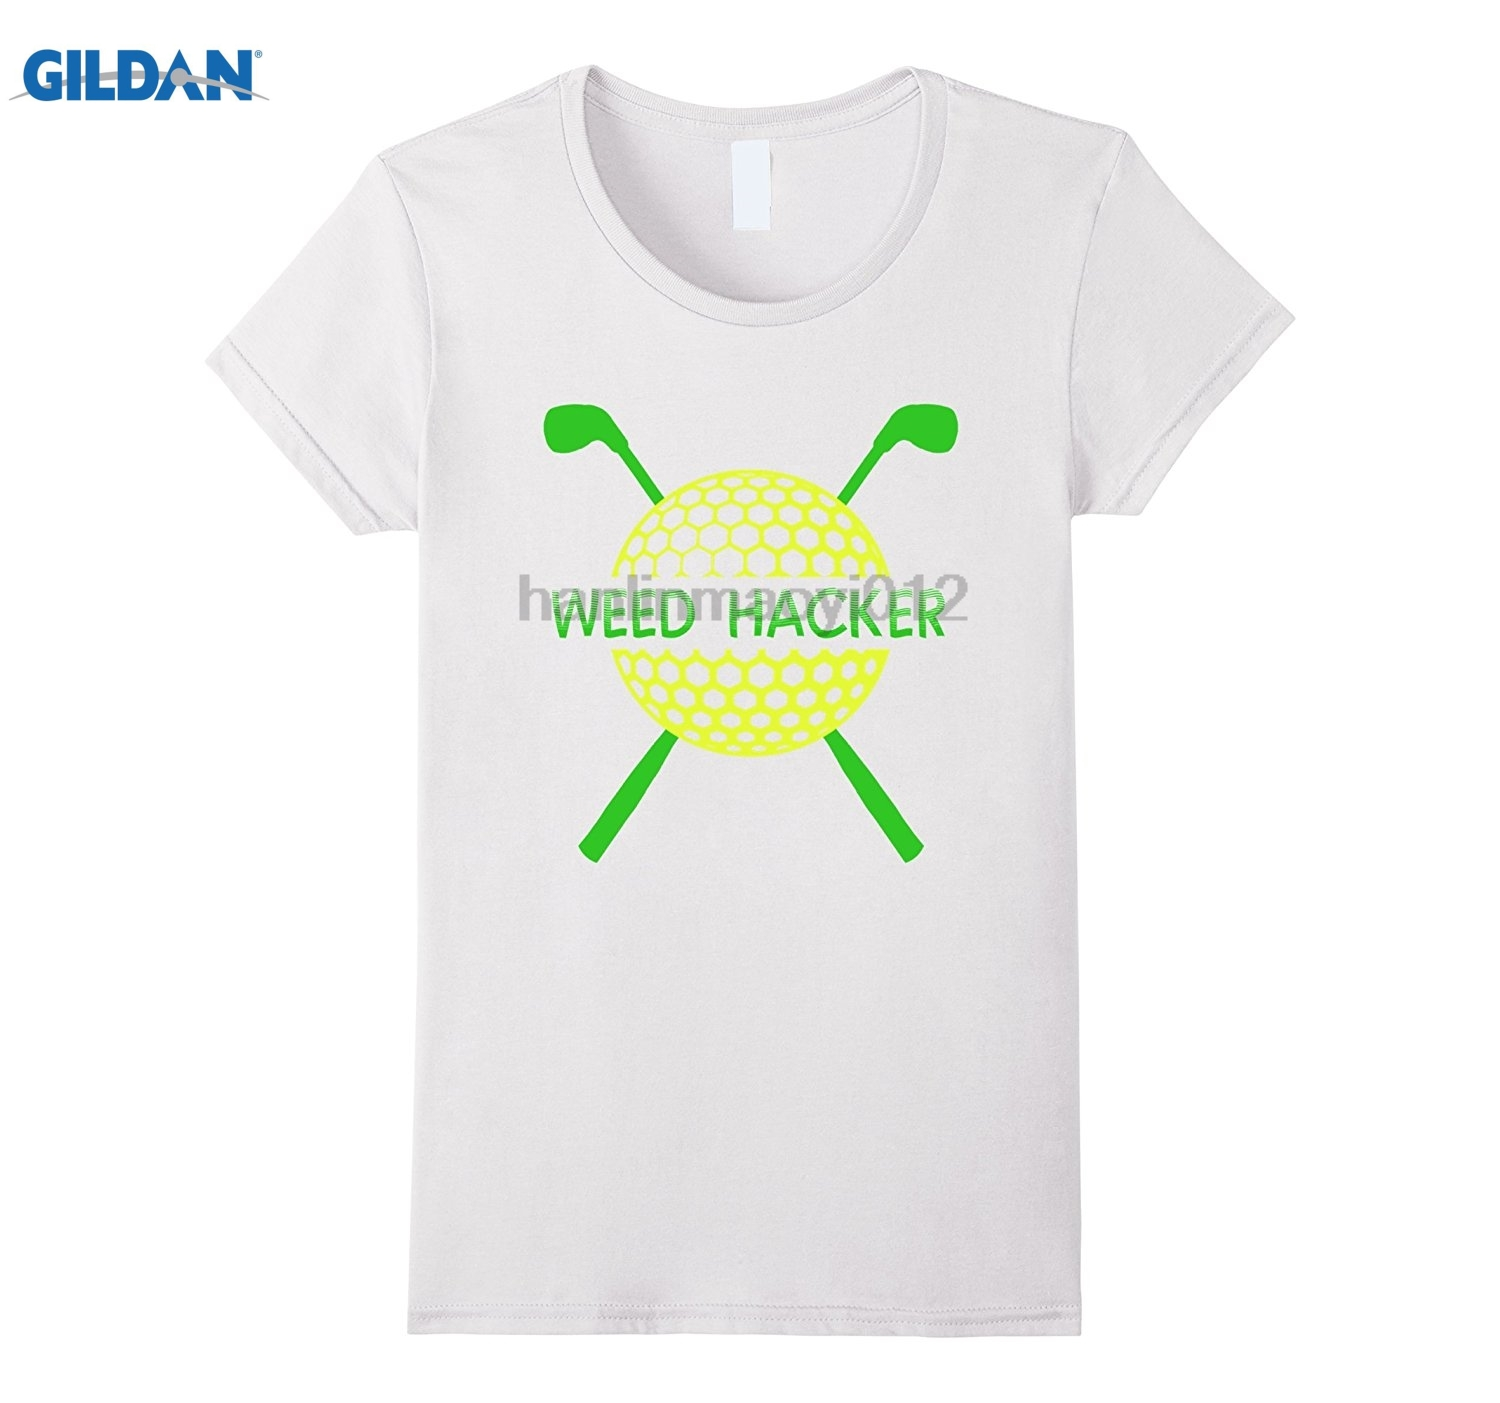 GILDAN Funny Weed Hacker Golfing T-Shirt 2018 Latest Hot Cotton T-Shirt Dress female T-shirt